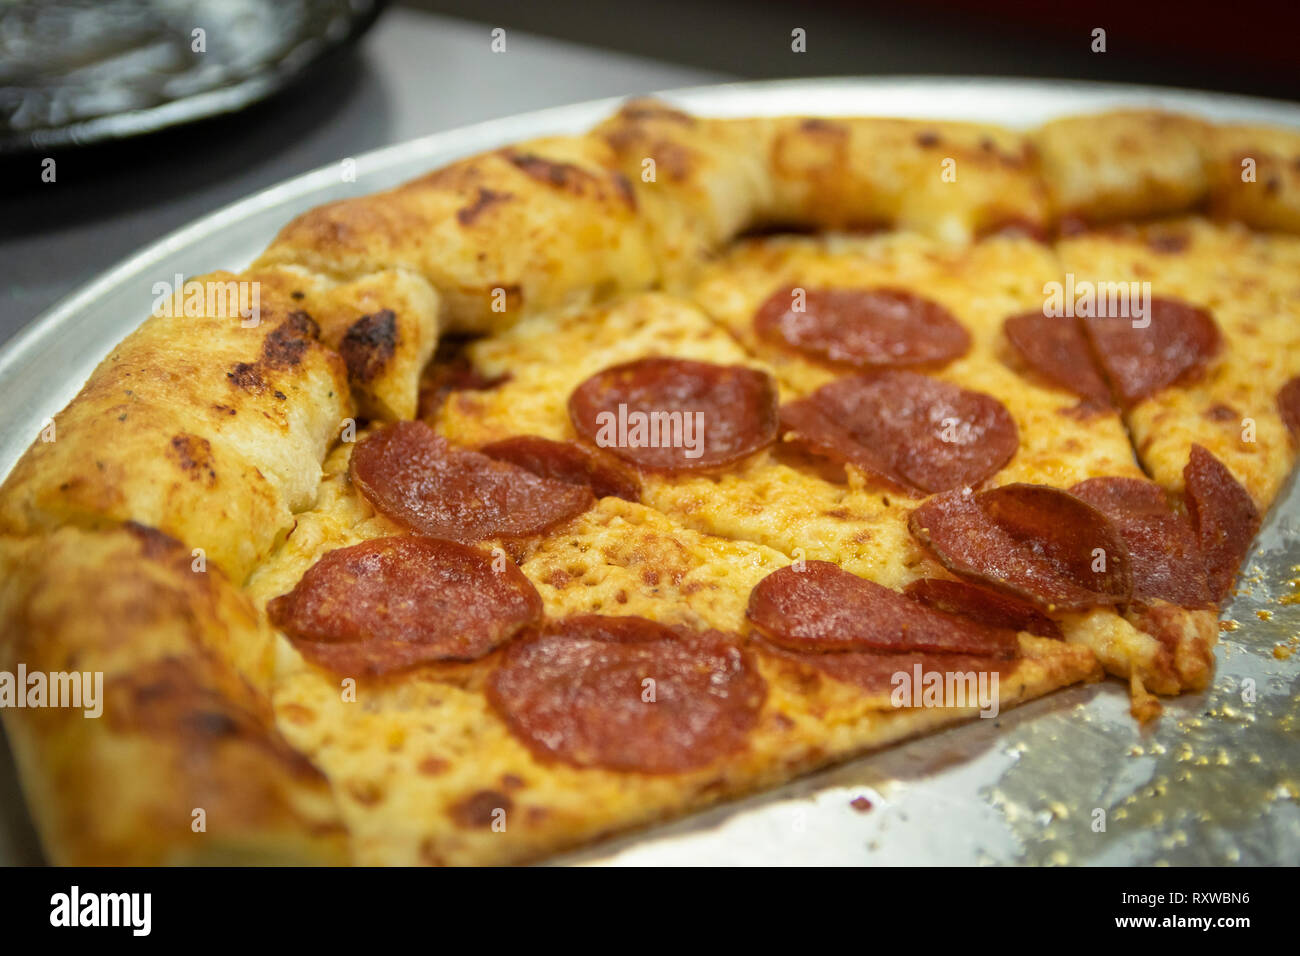 Slices of greasy American pepperoni pizza on a restaurant pizza pie pan. - Stock Image